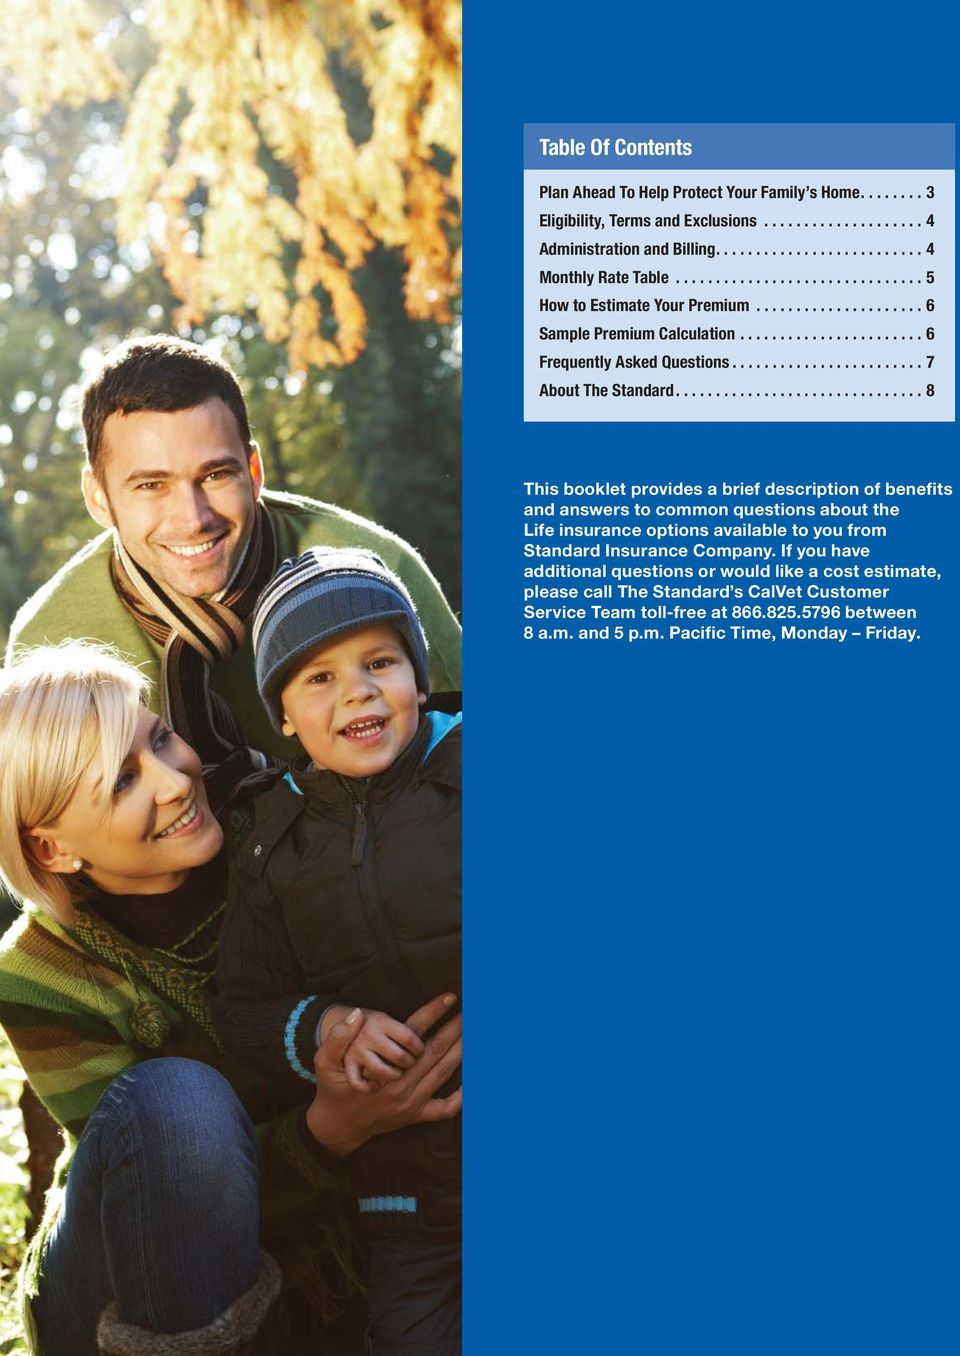 .............................. 8 This booklet provides a brief description of benefits and answers to common questions about the Life insurance options available to you from Standard Insurance Company.